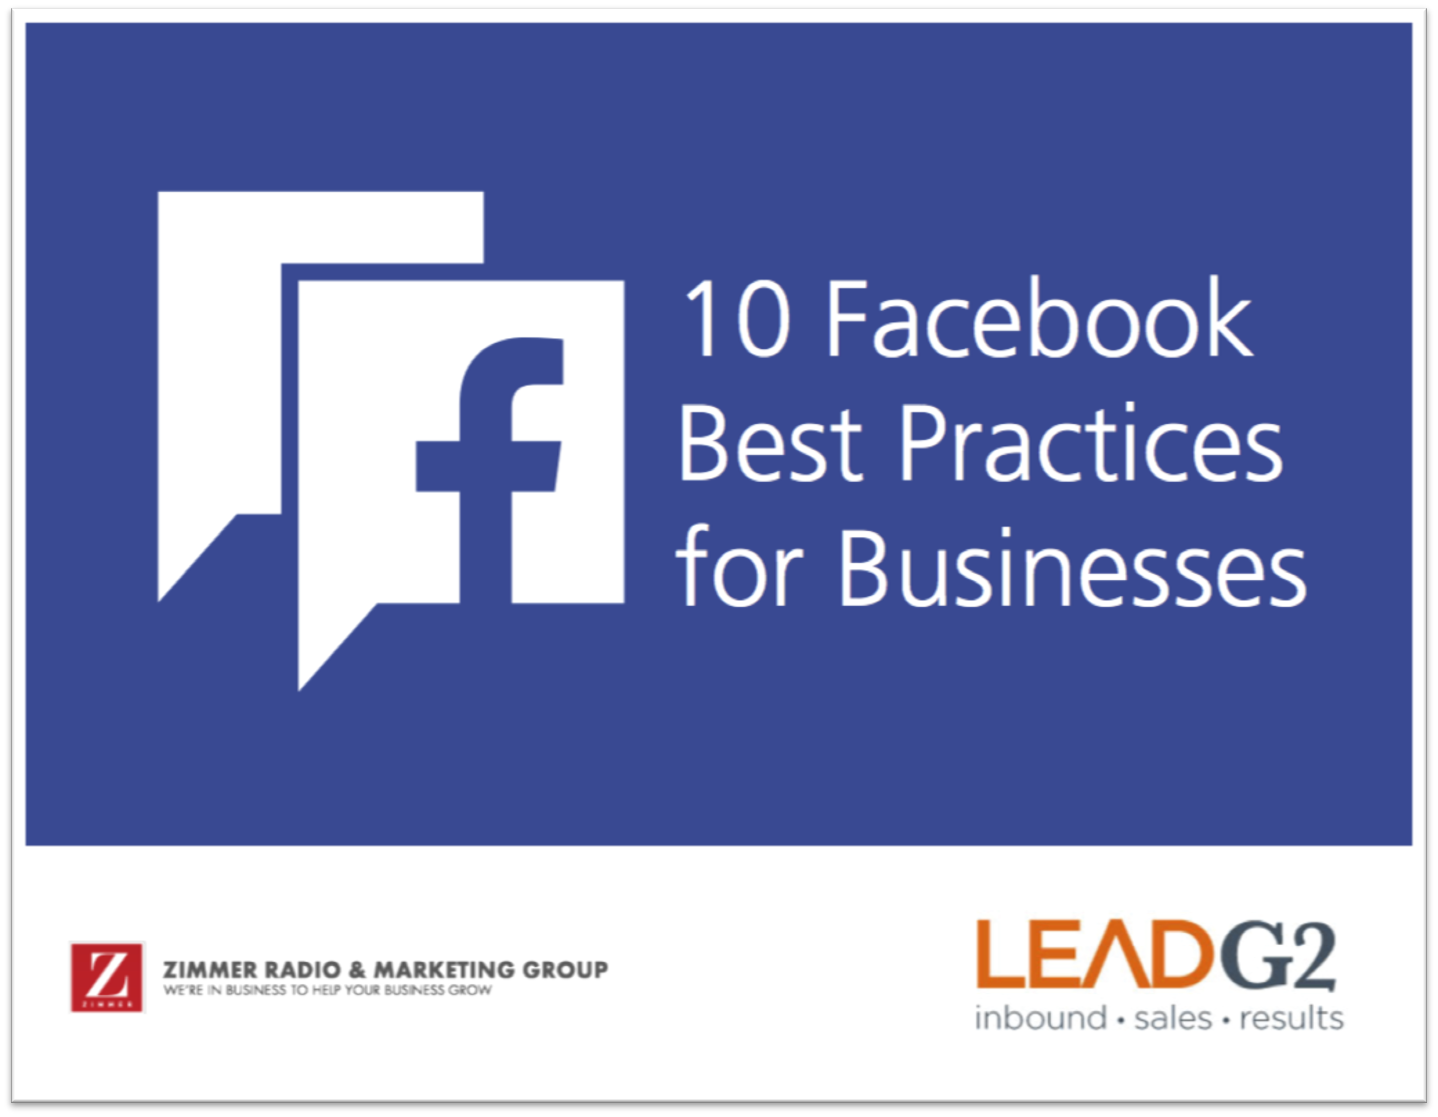 10-Facebook-Best-Practices